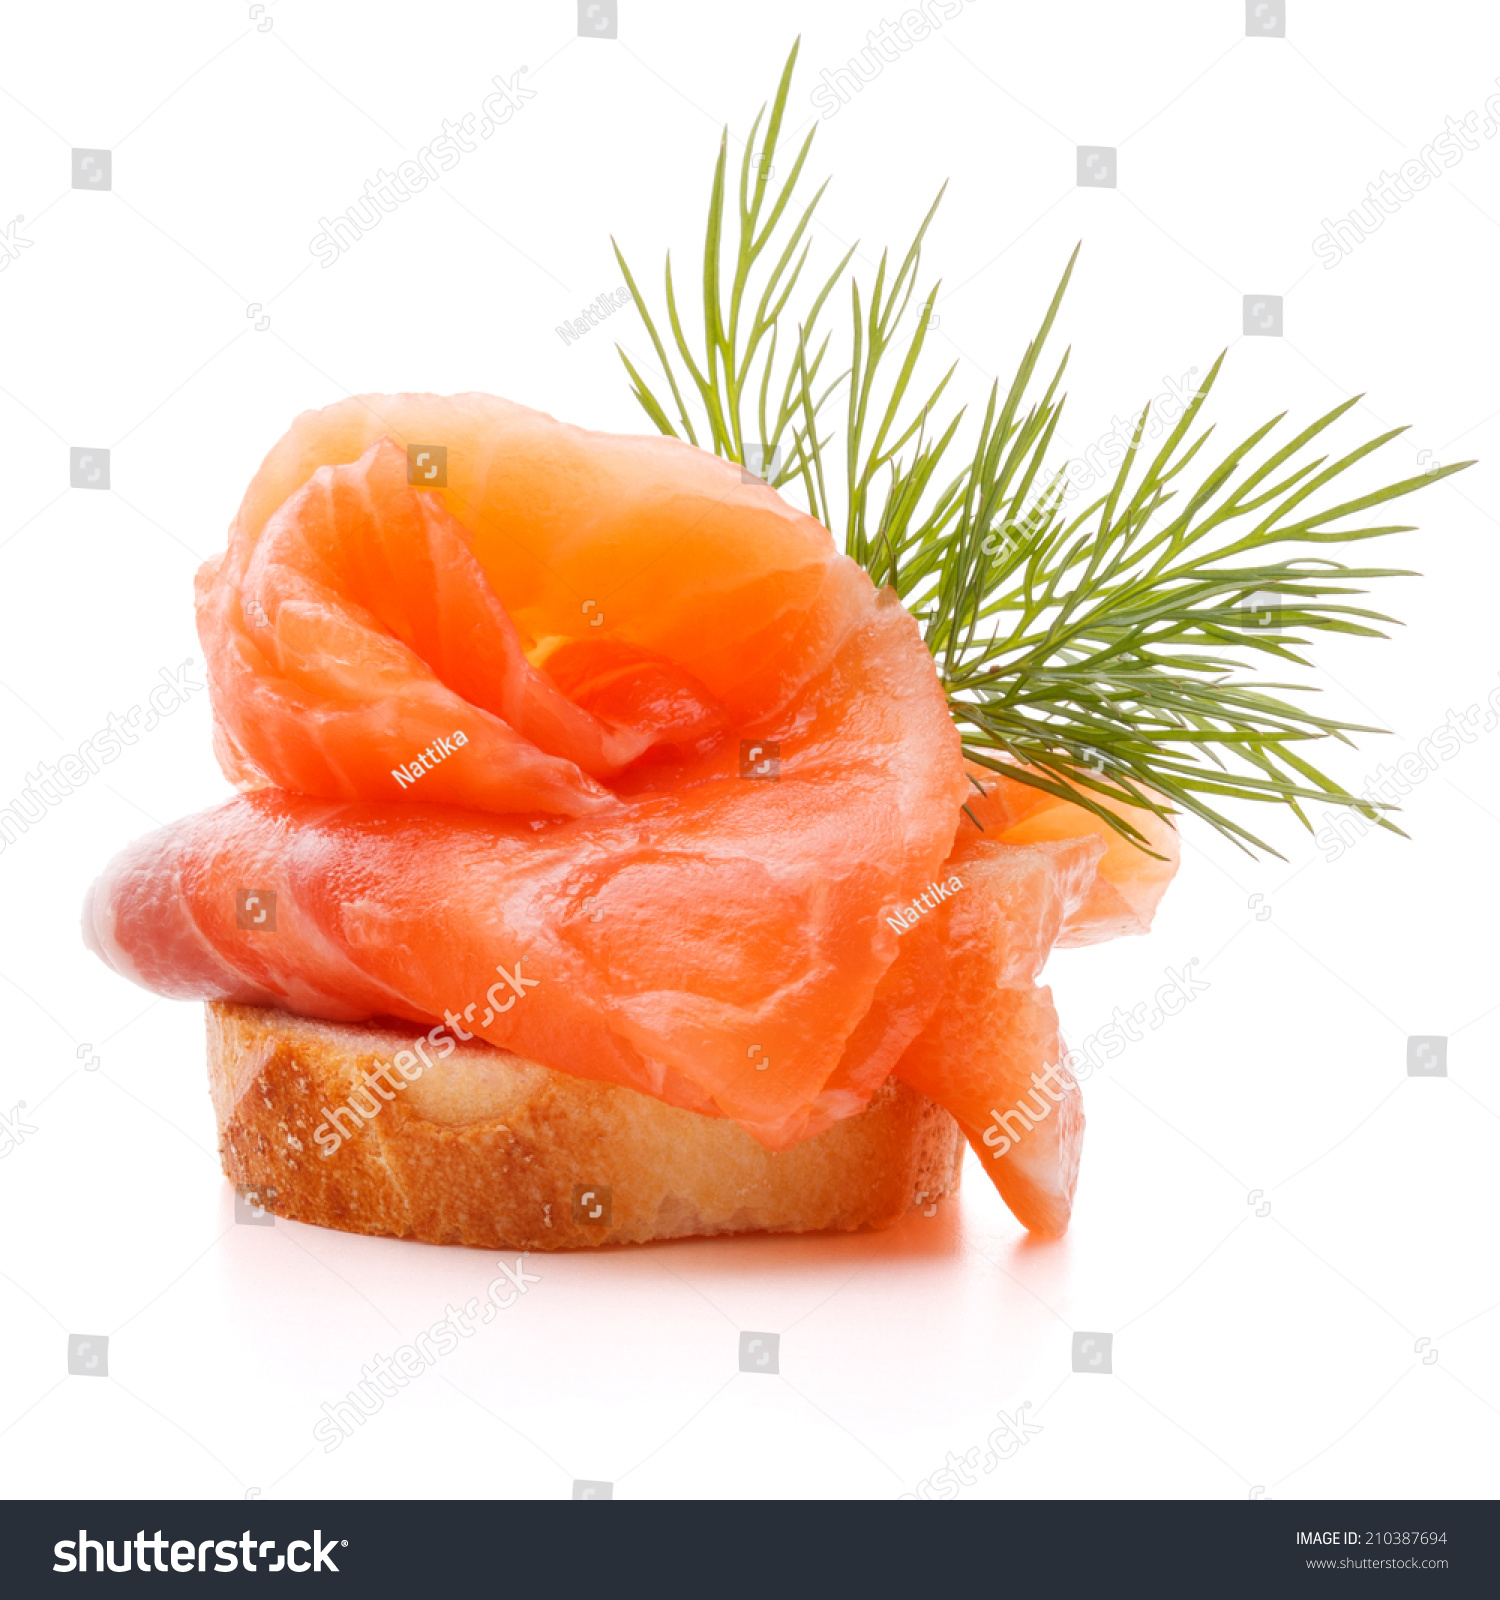 Sandwich canape salmon on white background stock photo for Canape sandwich